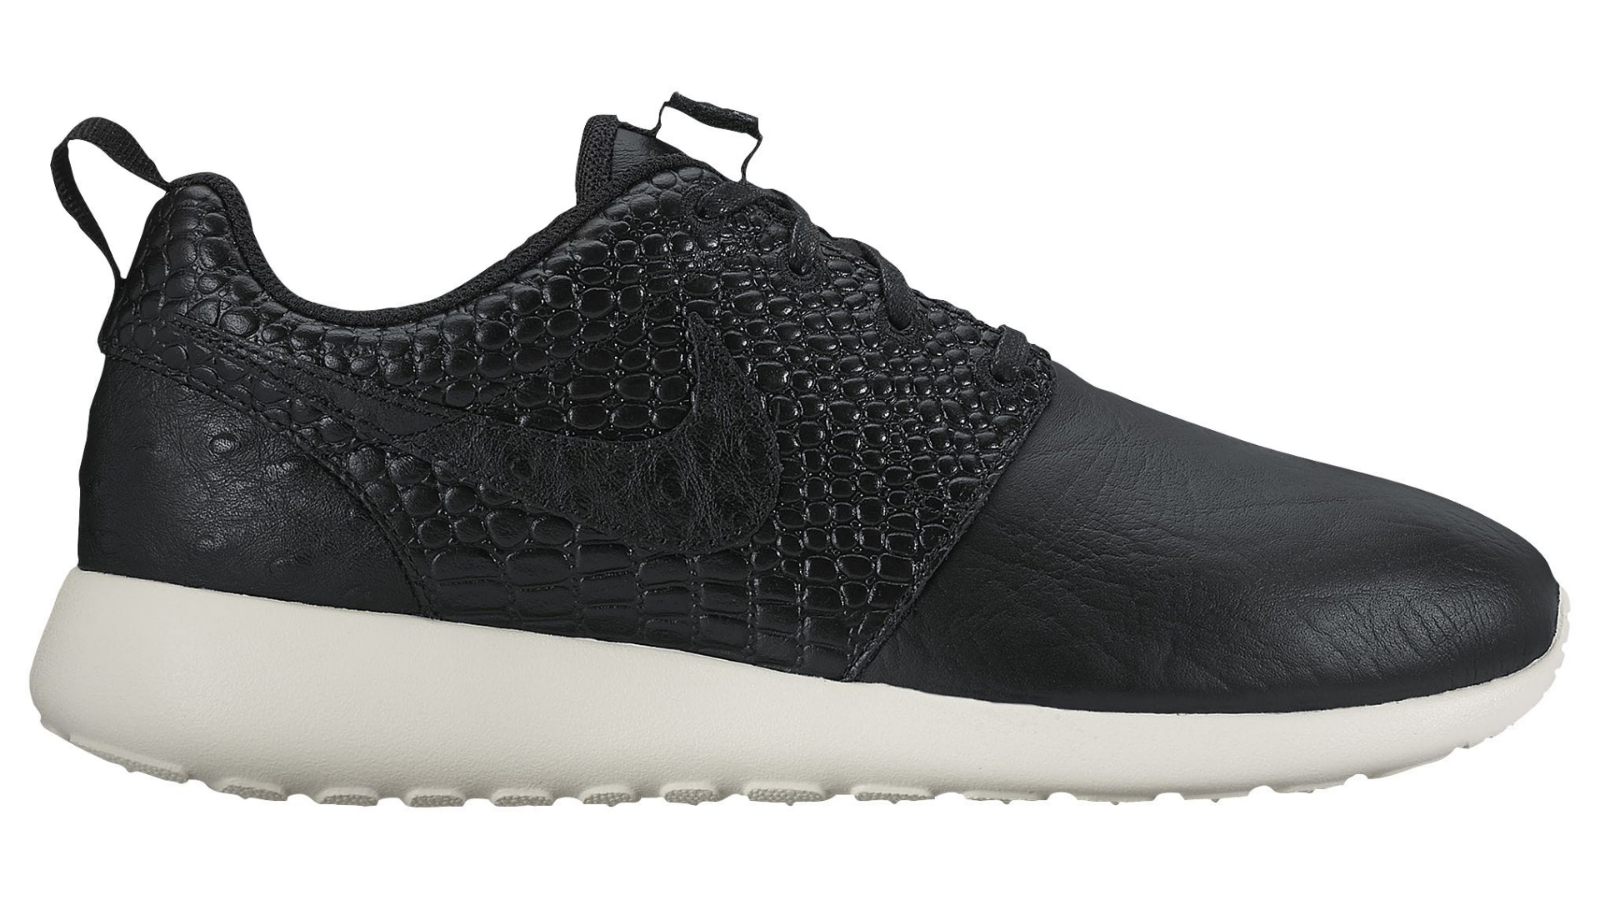 NIKE WMNS ROSHE ONE LX  LEATHER noir  LEATHER  IVORY Surprise Pack 881202-001 femmes  7 de67e5